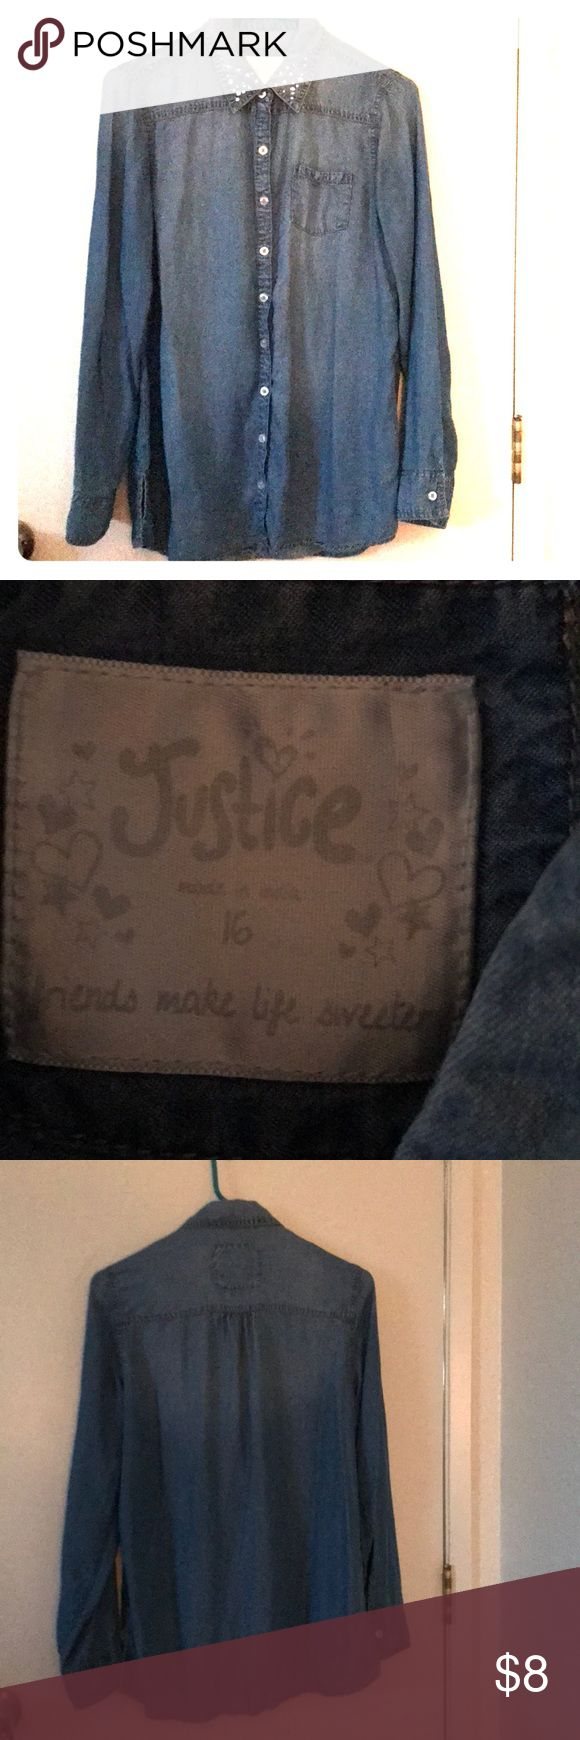 Child button up with bling at the collar. Girls light weight jean look material purchased from Justice clothing store largest there 16-20 girls not juniors. Never worn washed for pictures no signs of wear or tear to best of my knowledge thank you Justice Tops Button Down Shirts